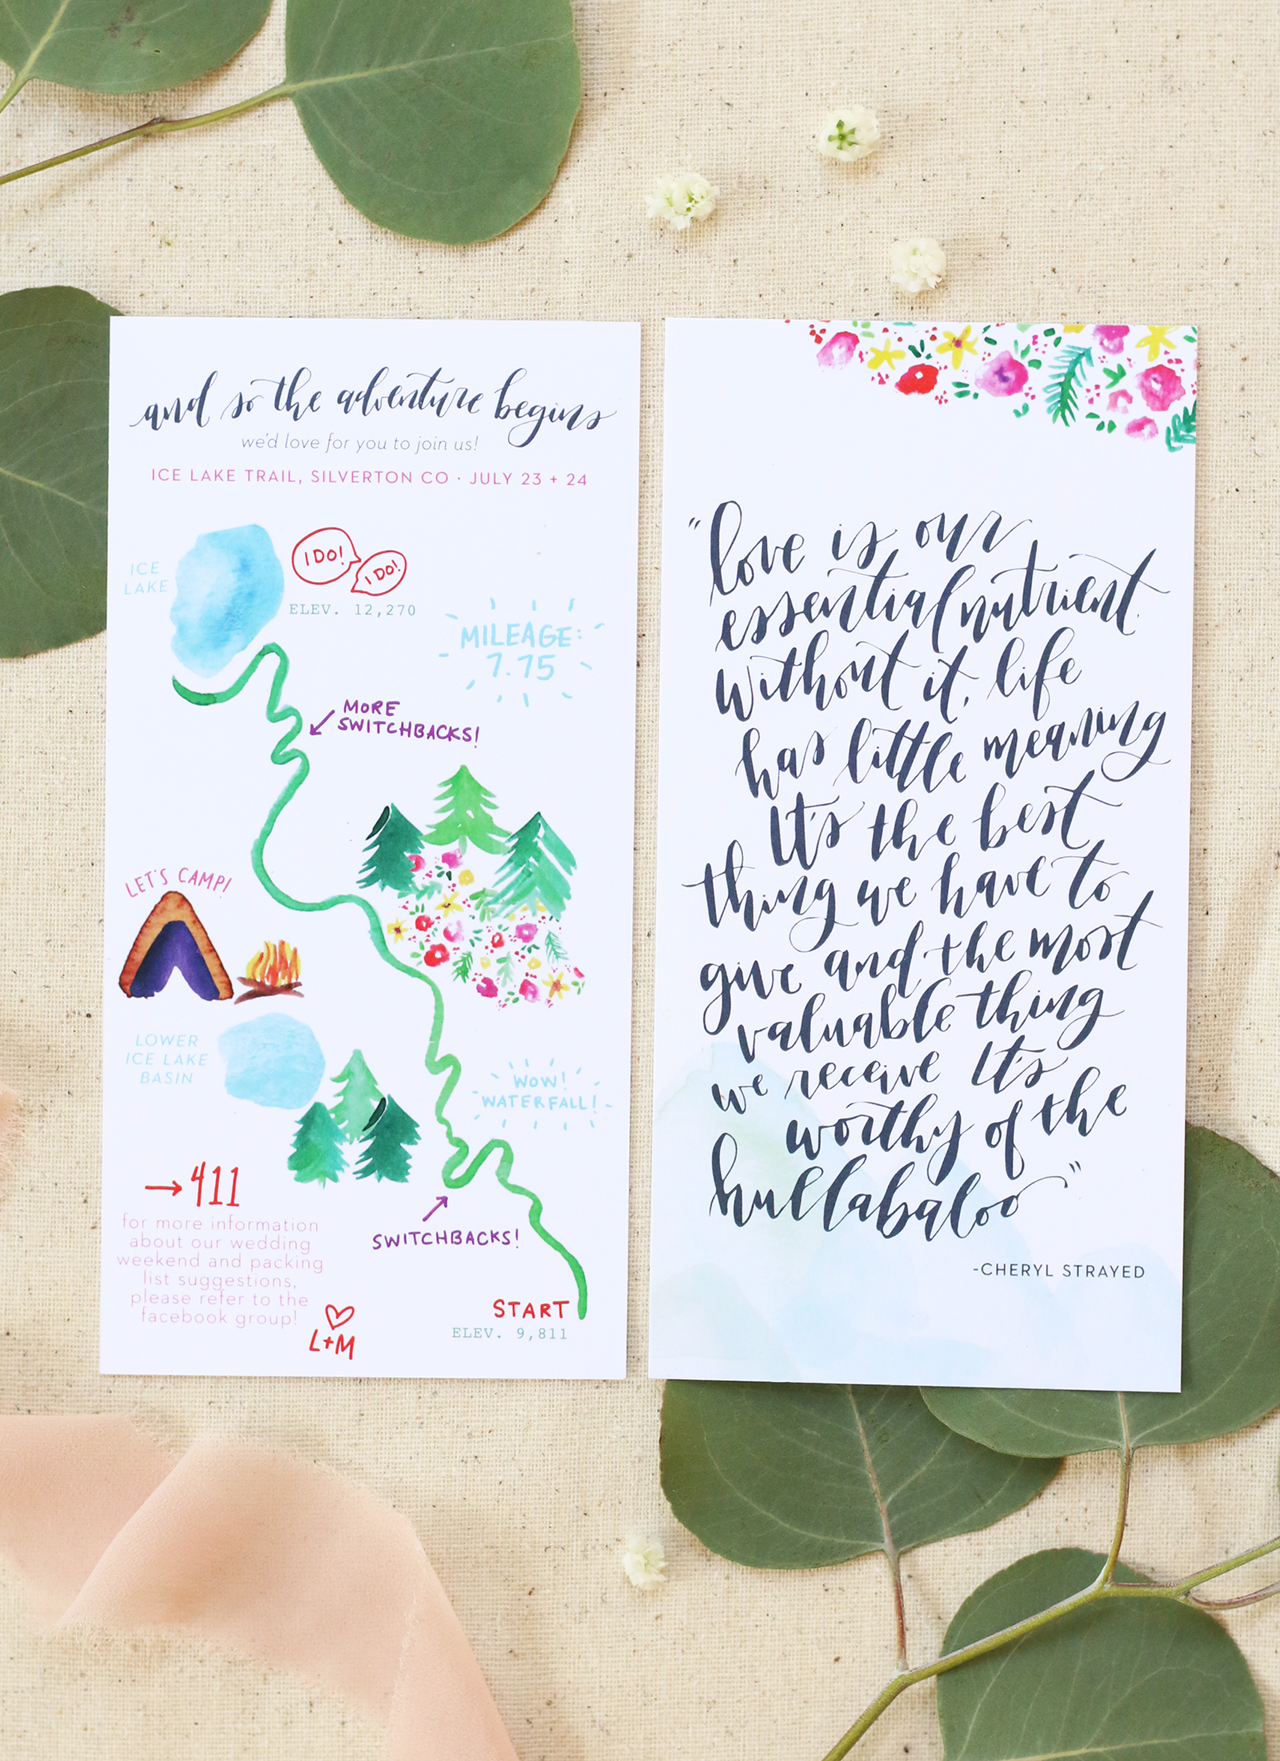 This map card doubled as a memento for guests to keep as a small piece of art. The couple wanted a meaningful quote to them lettered on the back. The front of the card was a custom watercolor of the trail they hiked to their ceremony location.